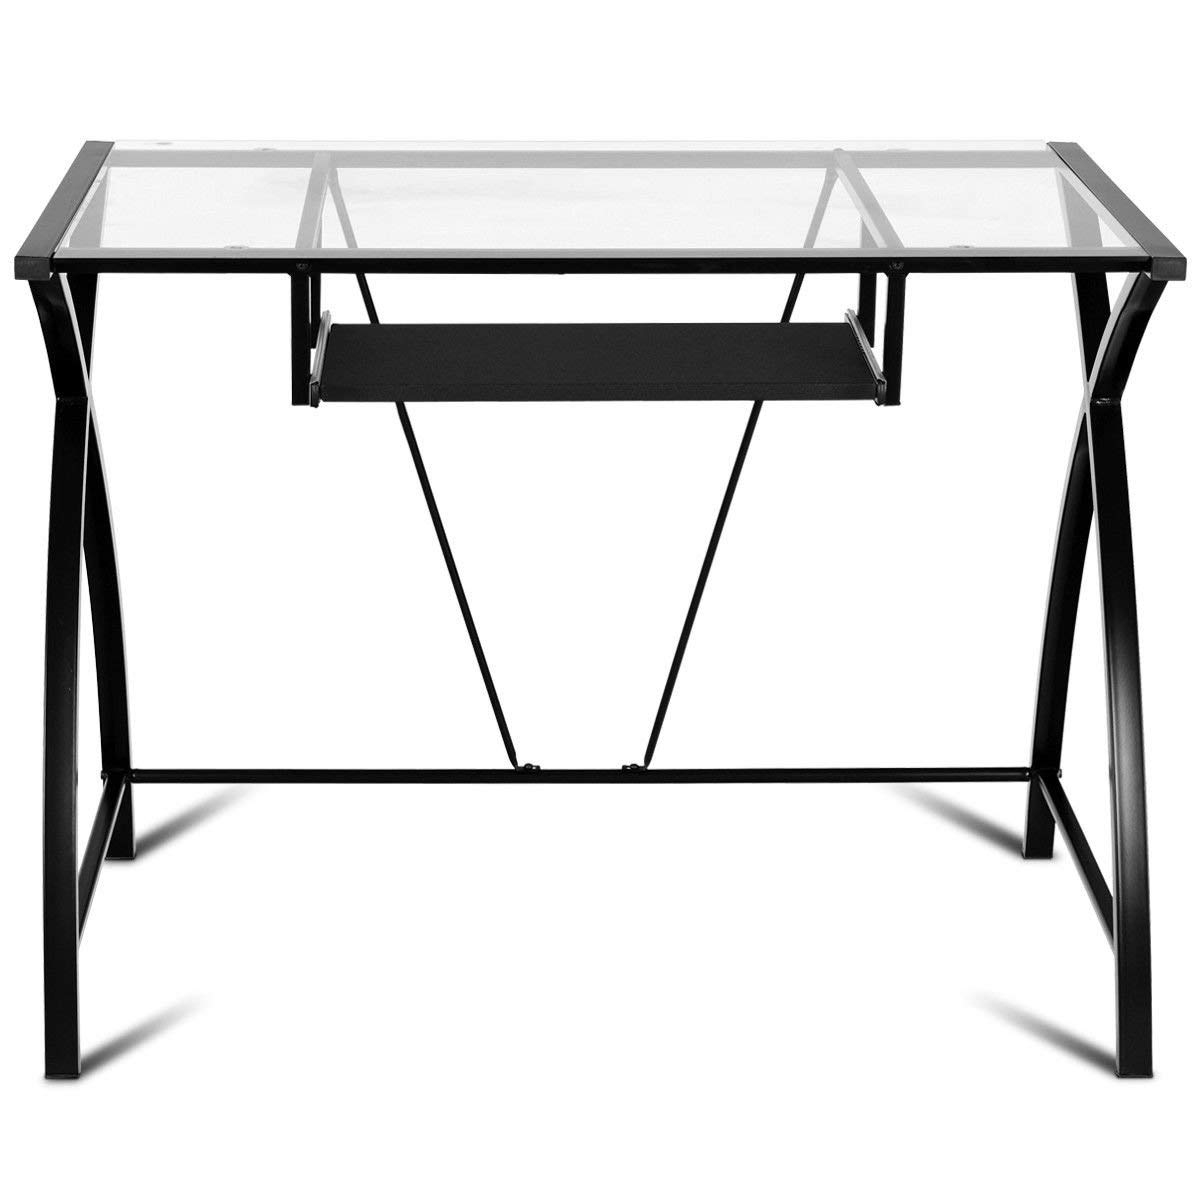 New Clear Glass Top Computer Desk w/Pull-Out Keyboard Tray Home Office Furniture